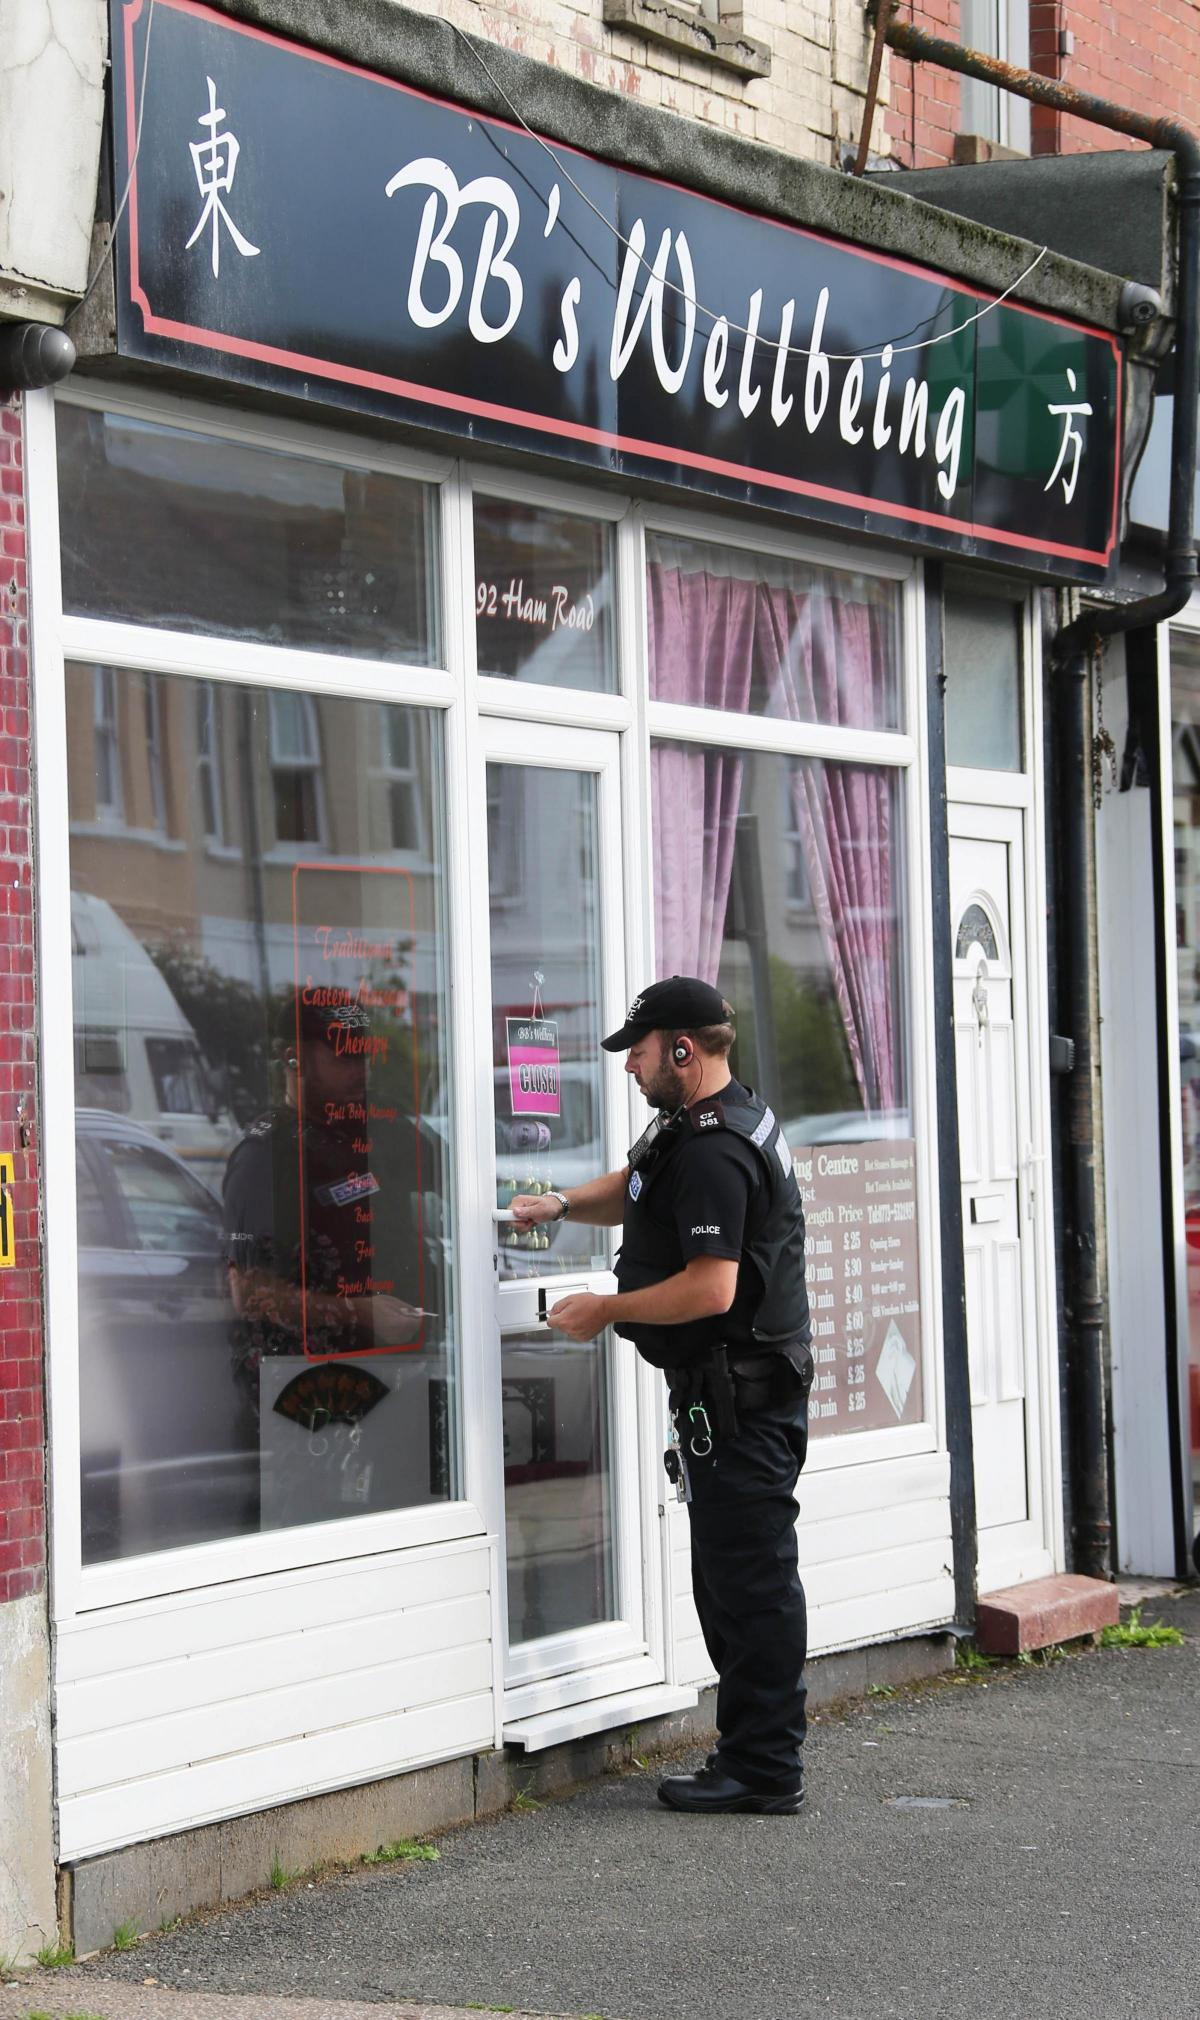 Massage parlours in sex trafficking raids